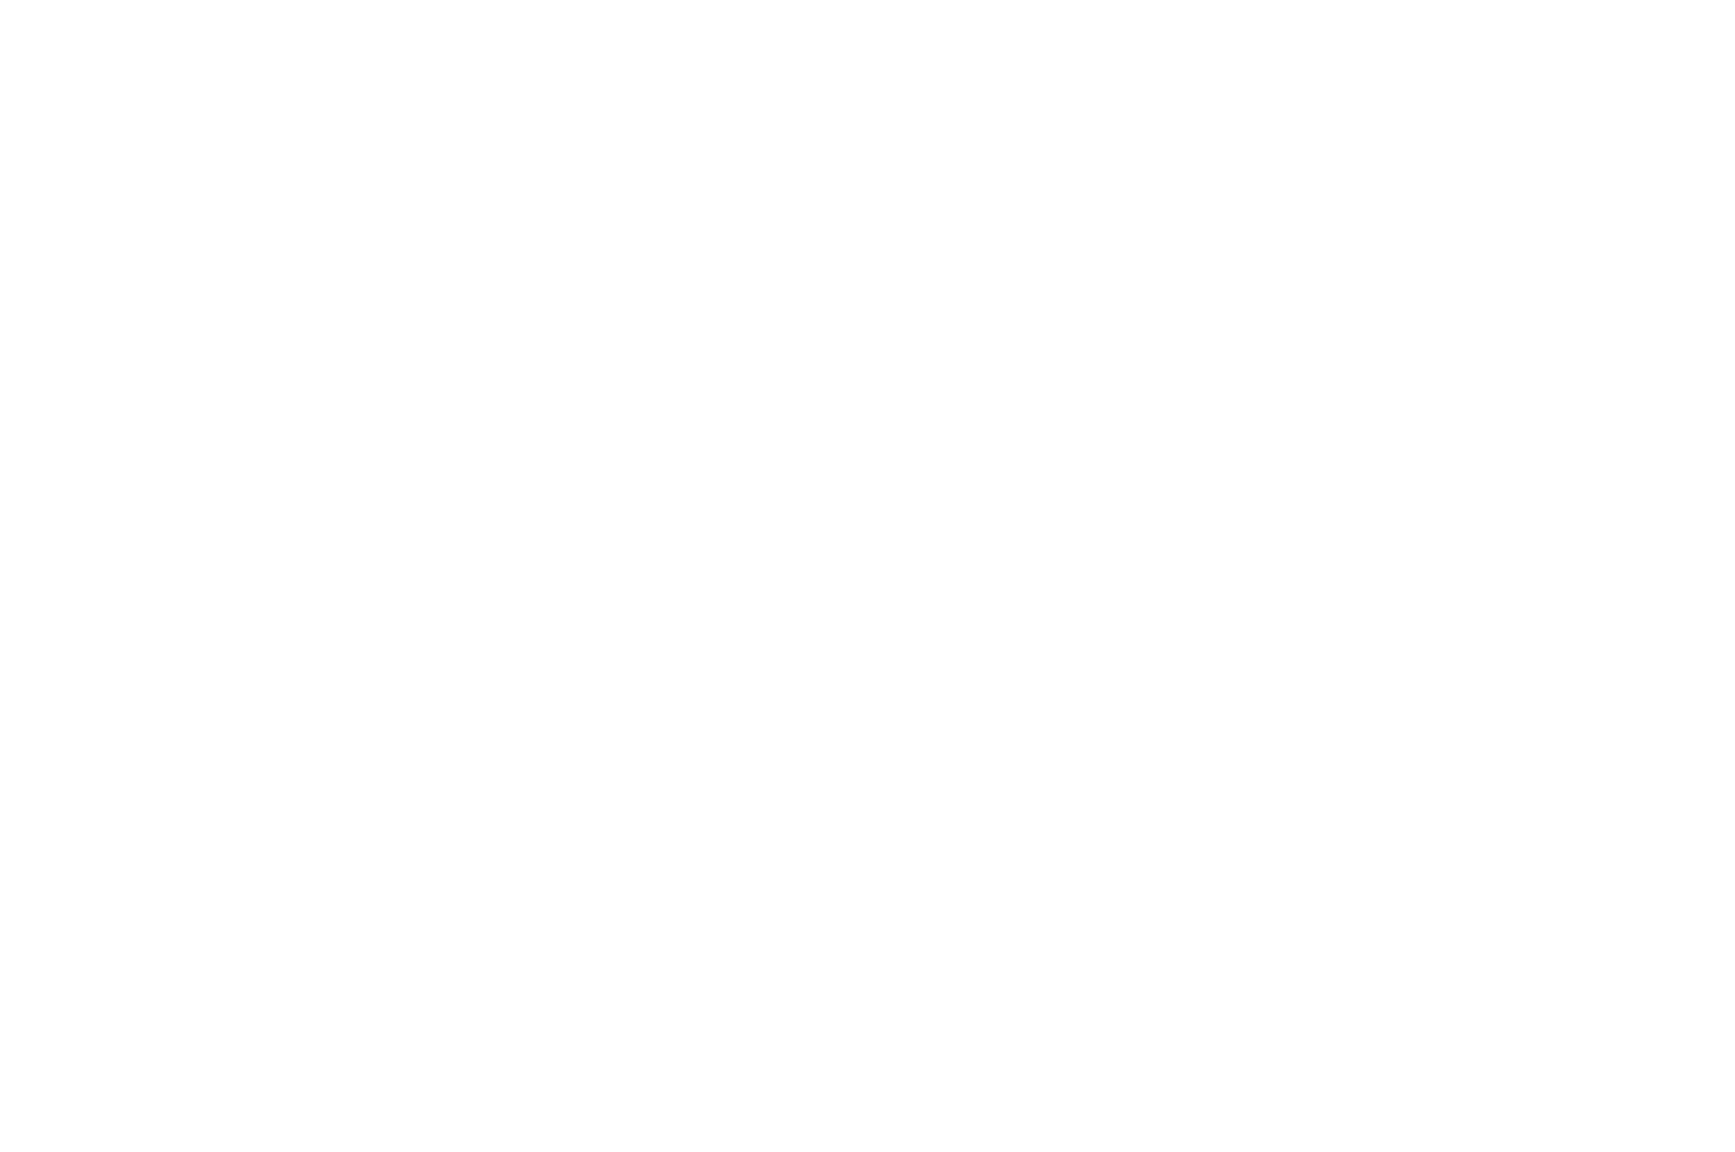 17. OFFICIAL SELECTION - Voiceless International Film Festival - 2018.png